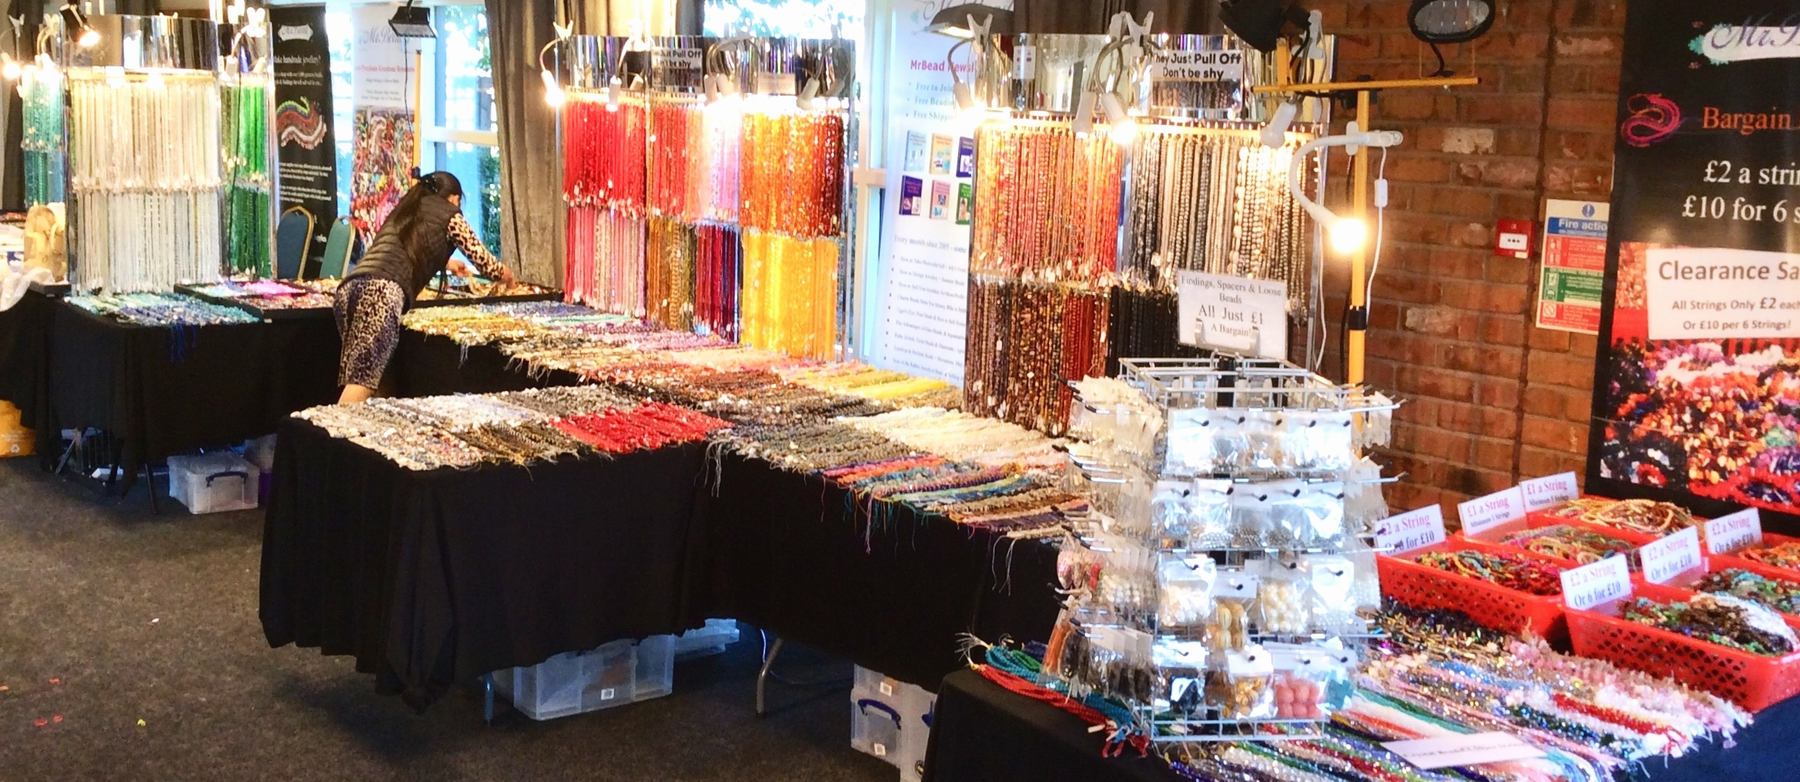 Newark Gem n Bead Fair 2019